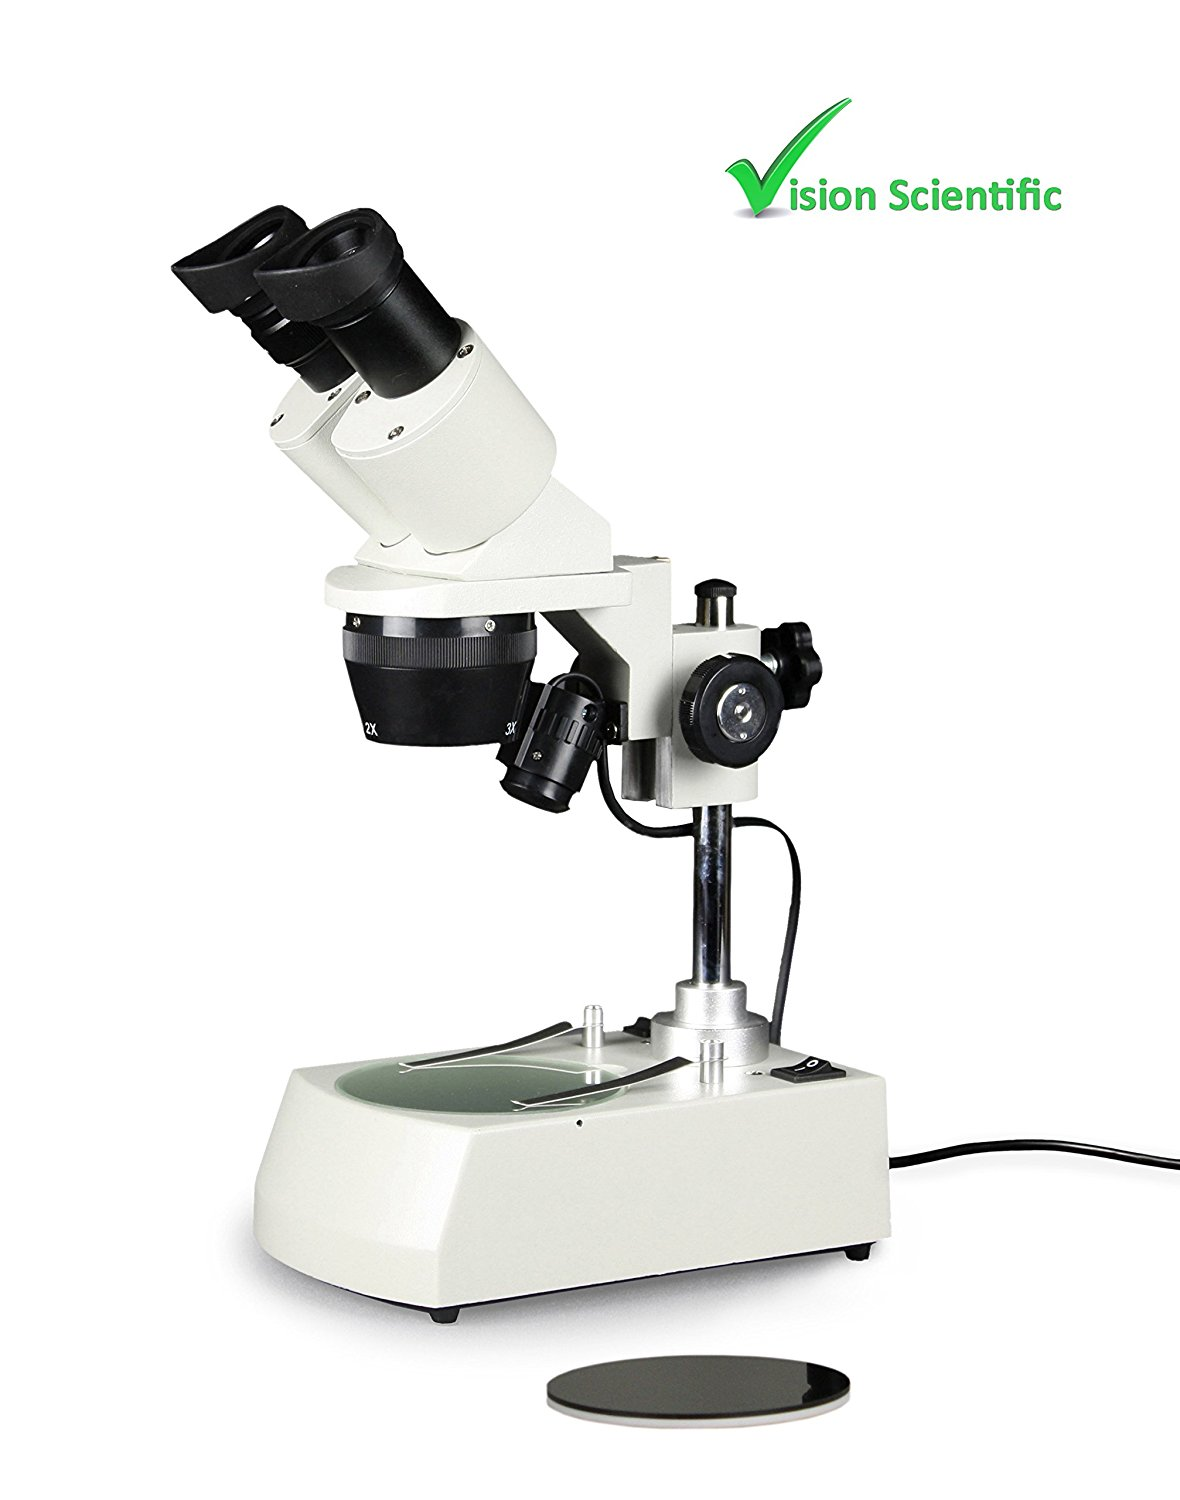 Vision Scientific VMS0002-LD-123 Tri-Power Binocular Stereo Microscope, 1X,2X,3X Objective, Paired 10X WF Eyepiece, 10X - 20x - 30X Magnification, Top and Bottom LED Illumination, Post-Mounted Stand